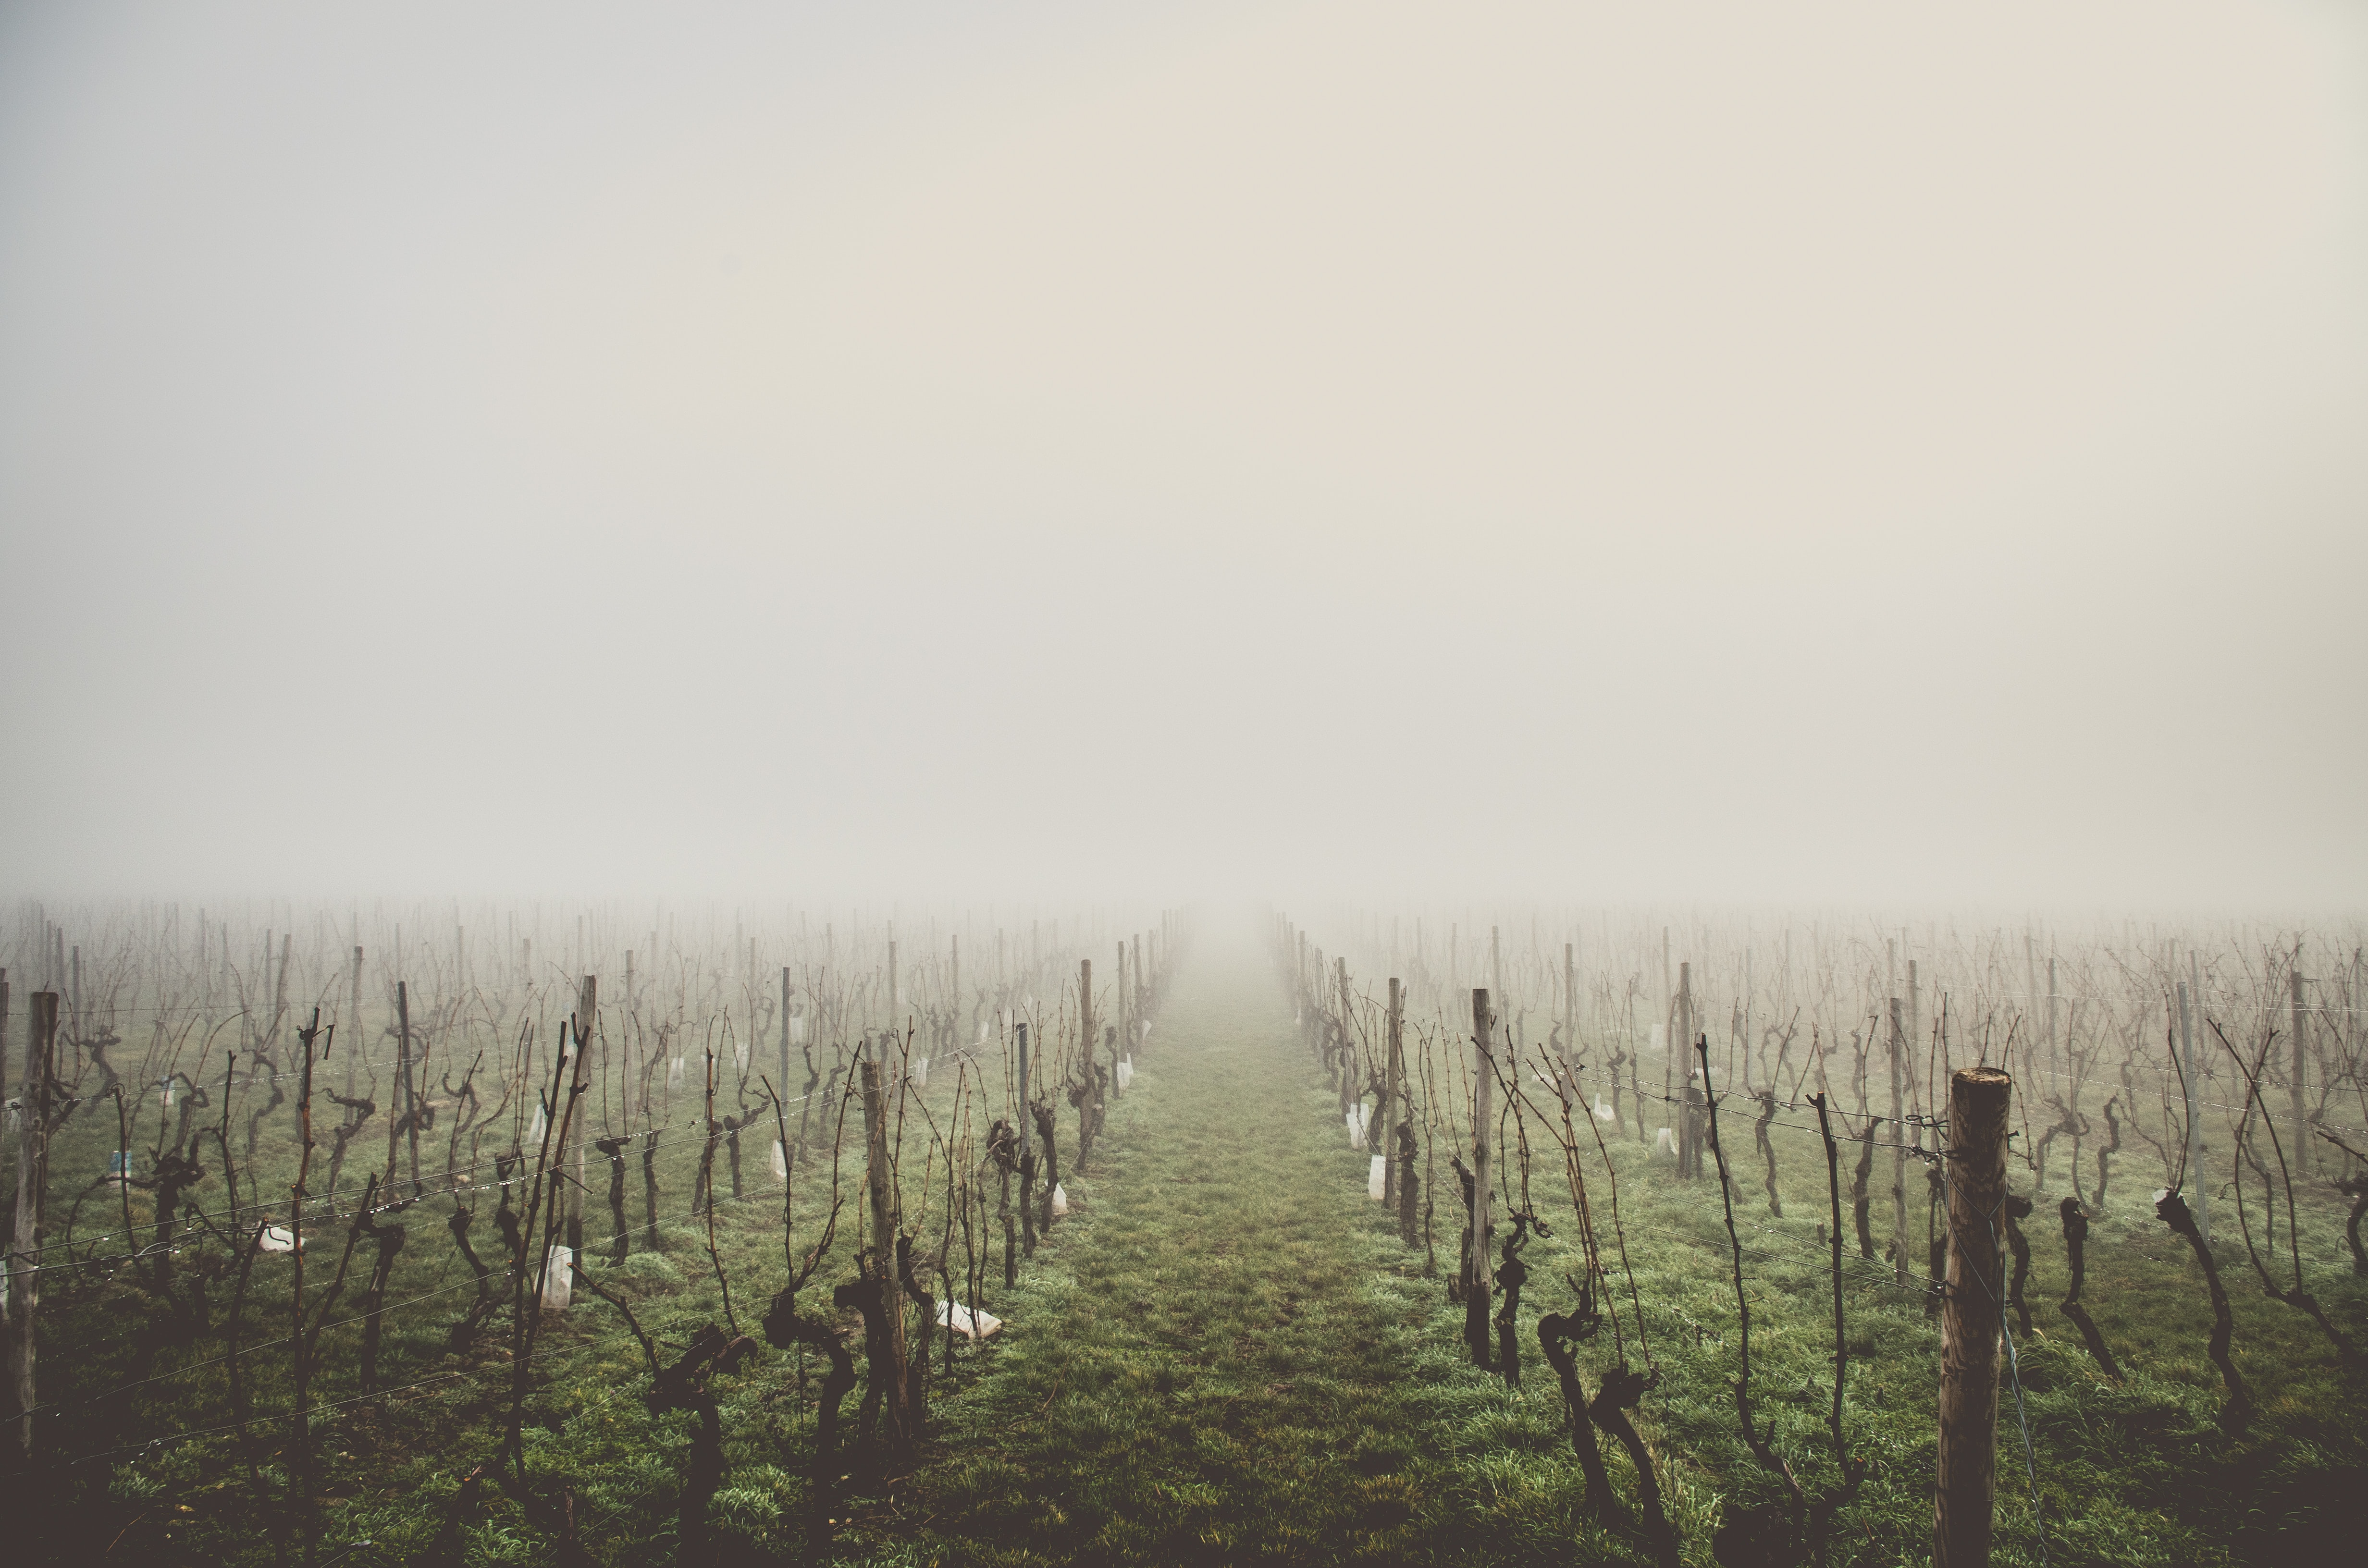 green fields with leafless trees on a foggy day